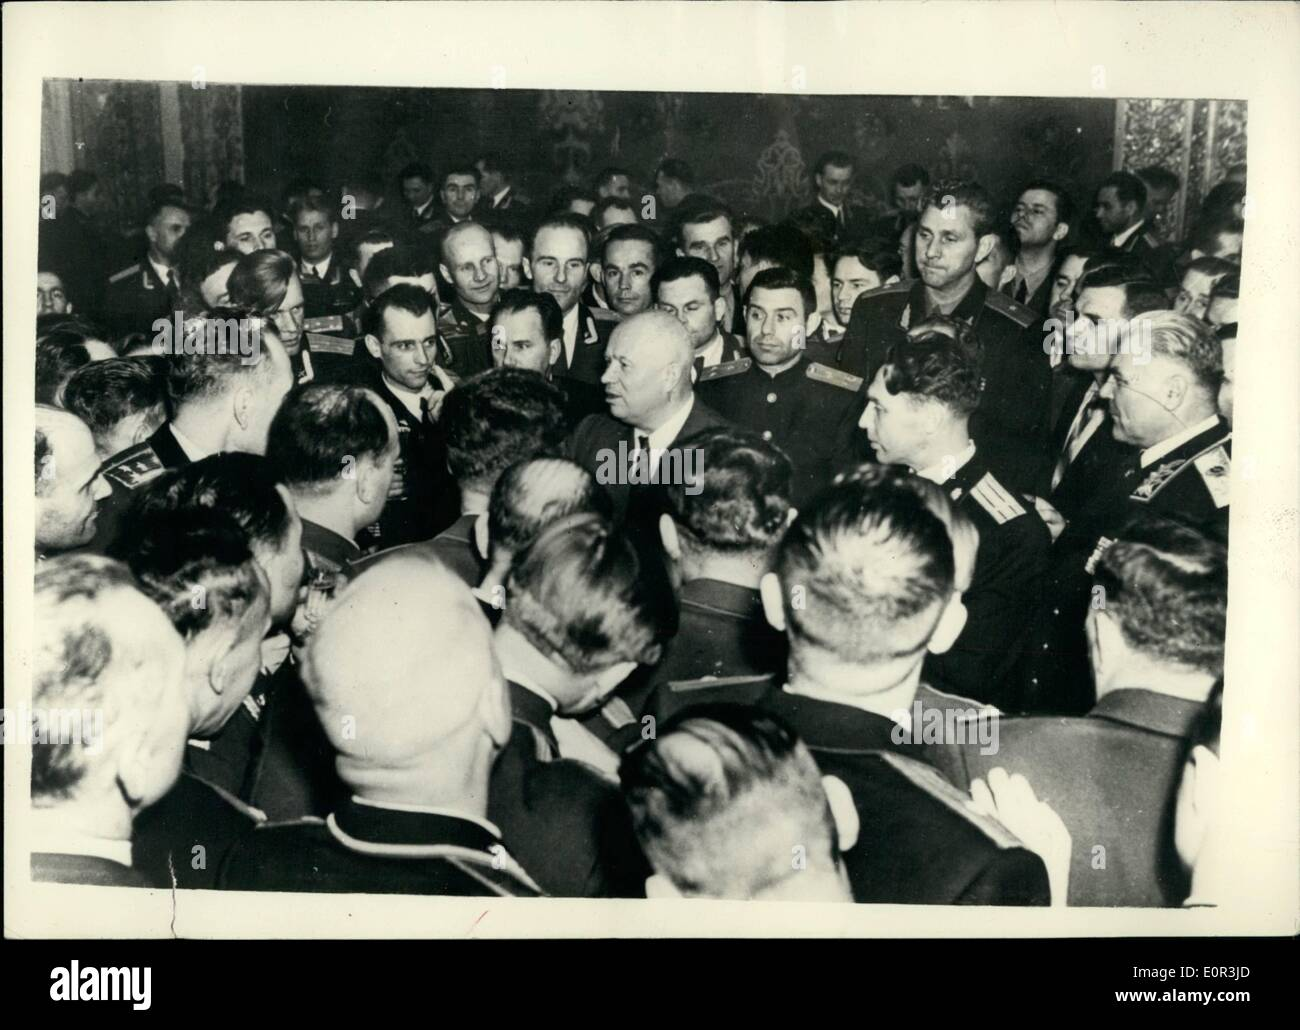 Nov. 11, 1957 - Mr, Kruschev Attends Reception At Moscow Military Academy.: The cultural Committee of the Communist Party of the Soviet Union and U.S.S.R. Council of Ministers arranged a reception for a graduates of Moscow Military Academies.: Photo shows Mr. Kruschev, First Secretary of the Central Committee of the CPSU among the graduated of the Moscow Military Academy - during the reception. - Stock Image